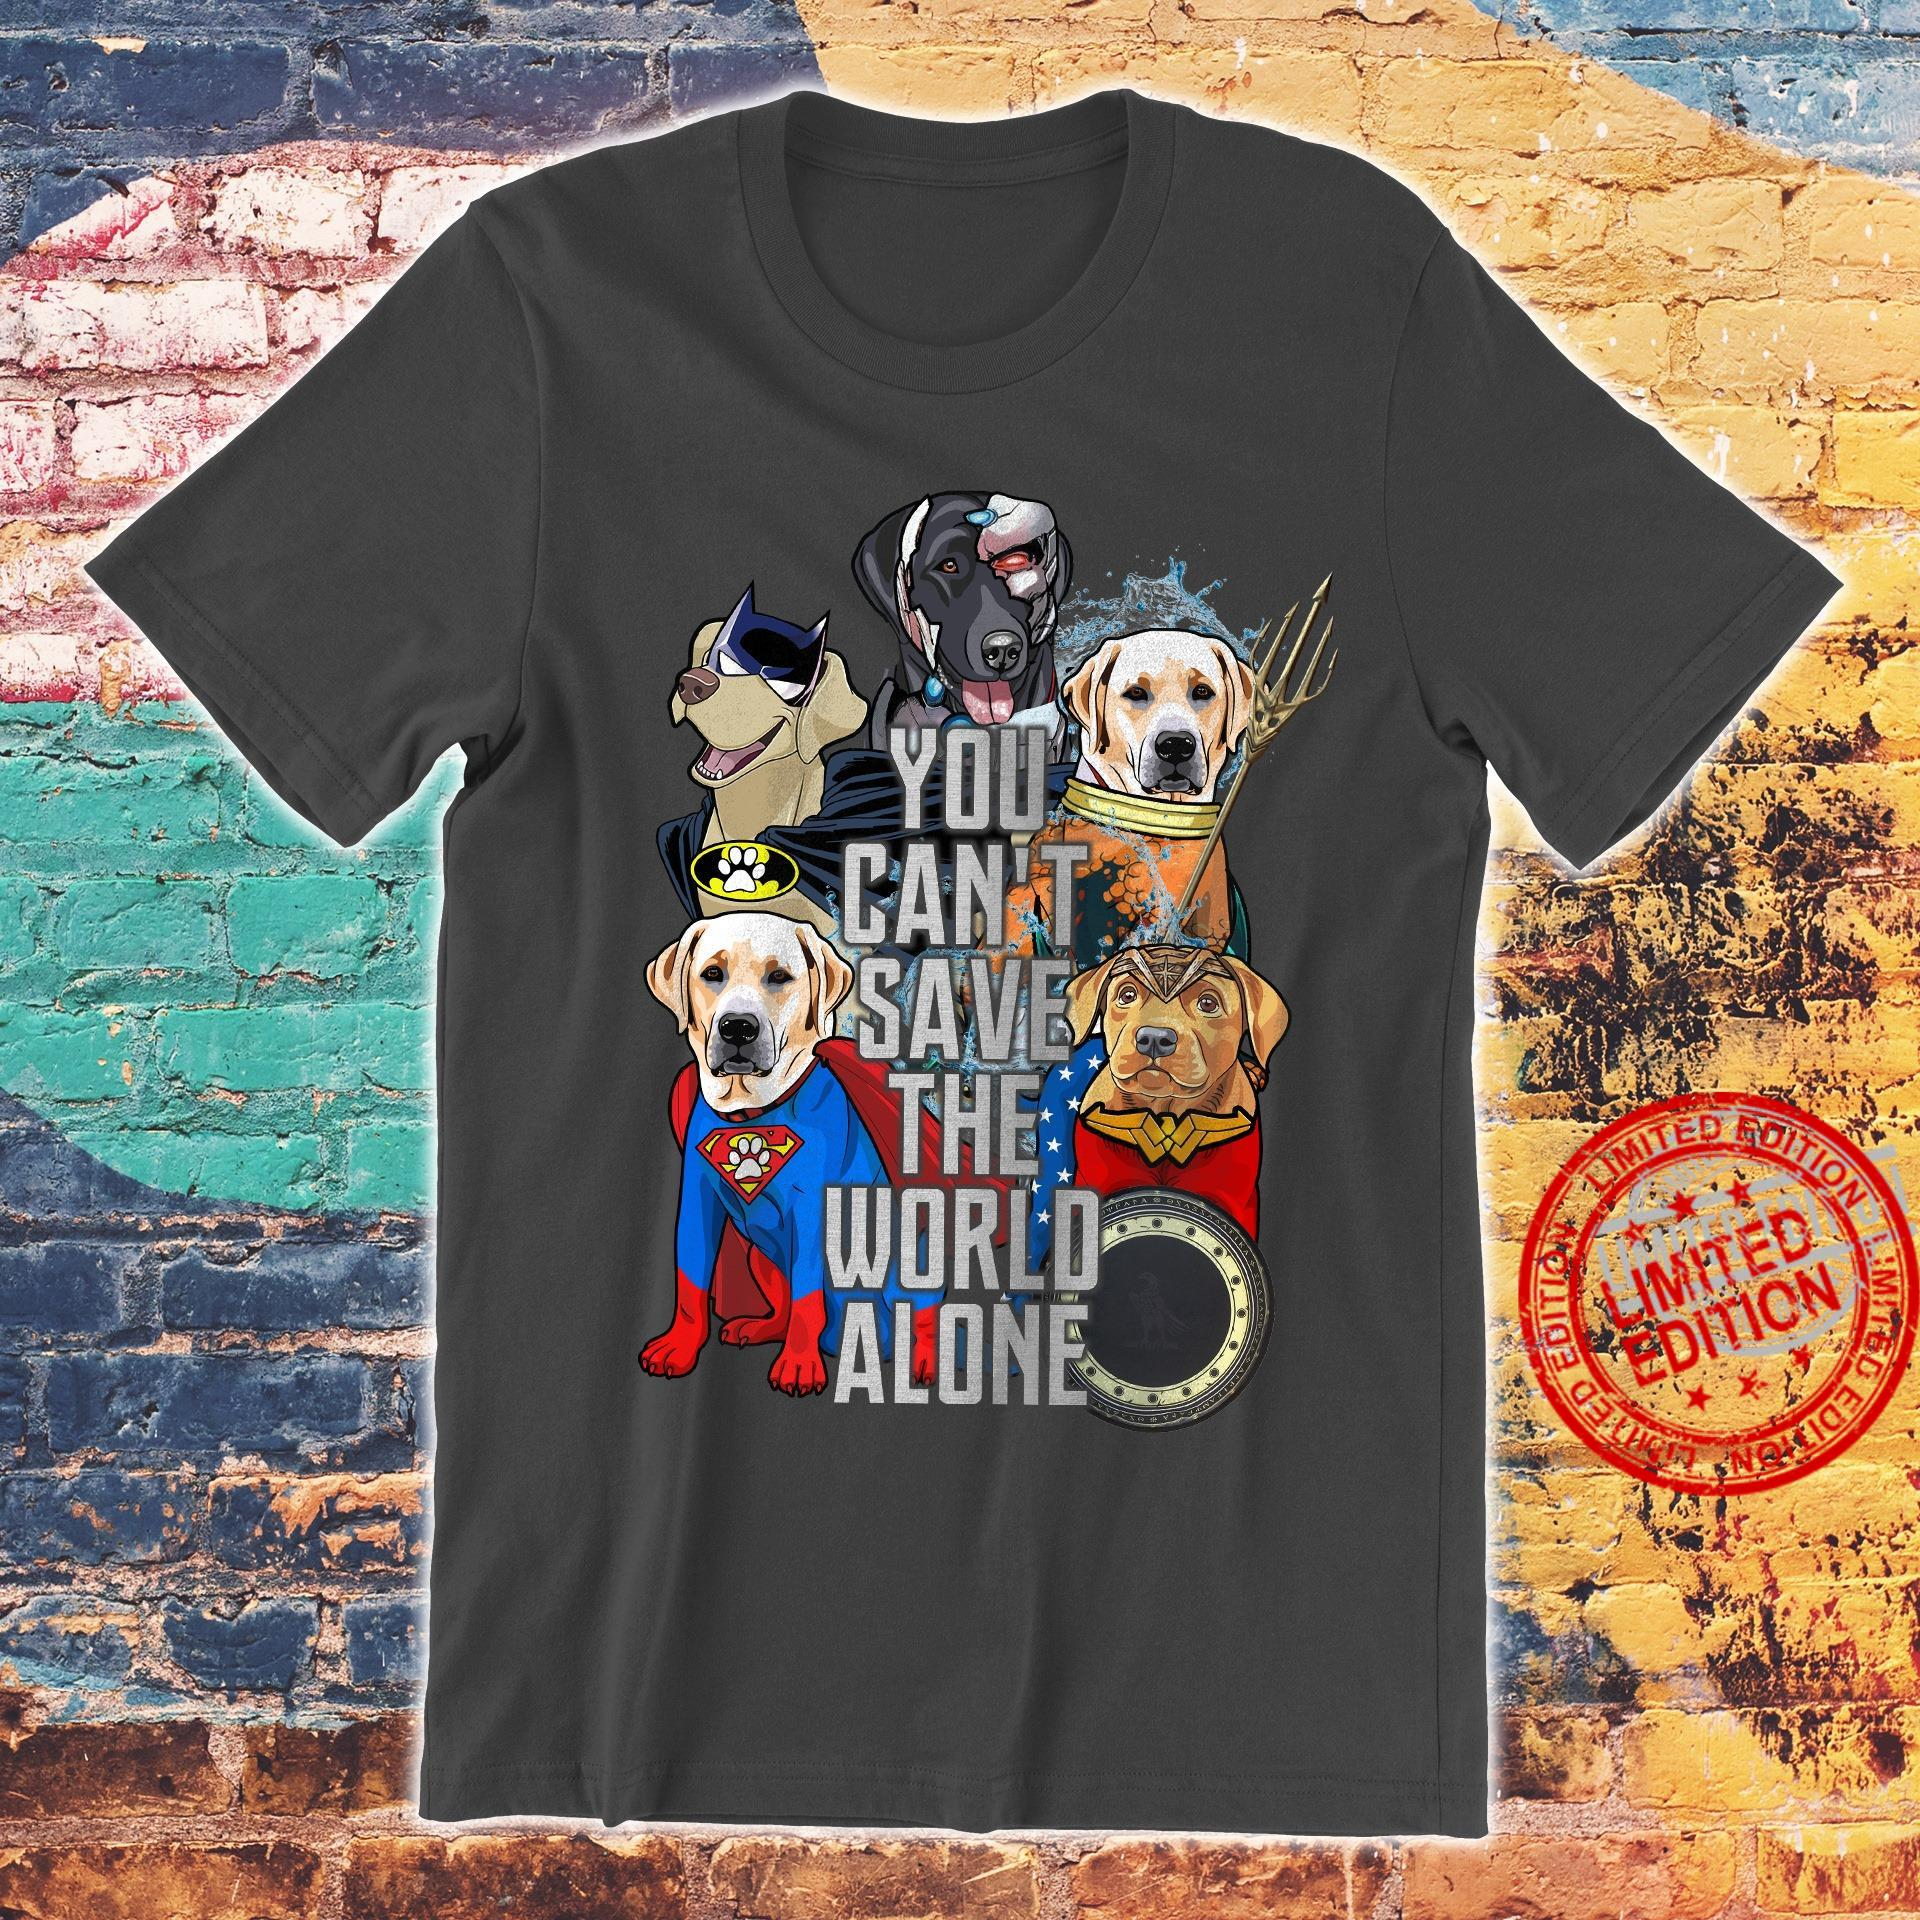 You Can't Save The World Alone Shirt